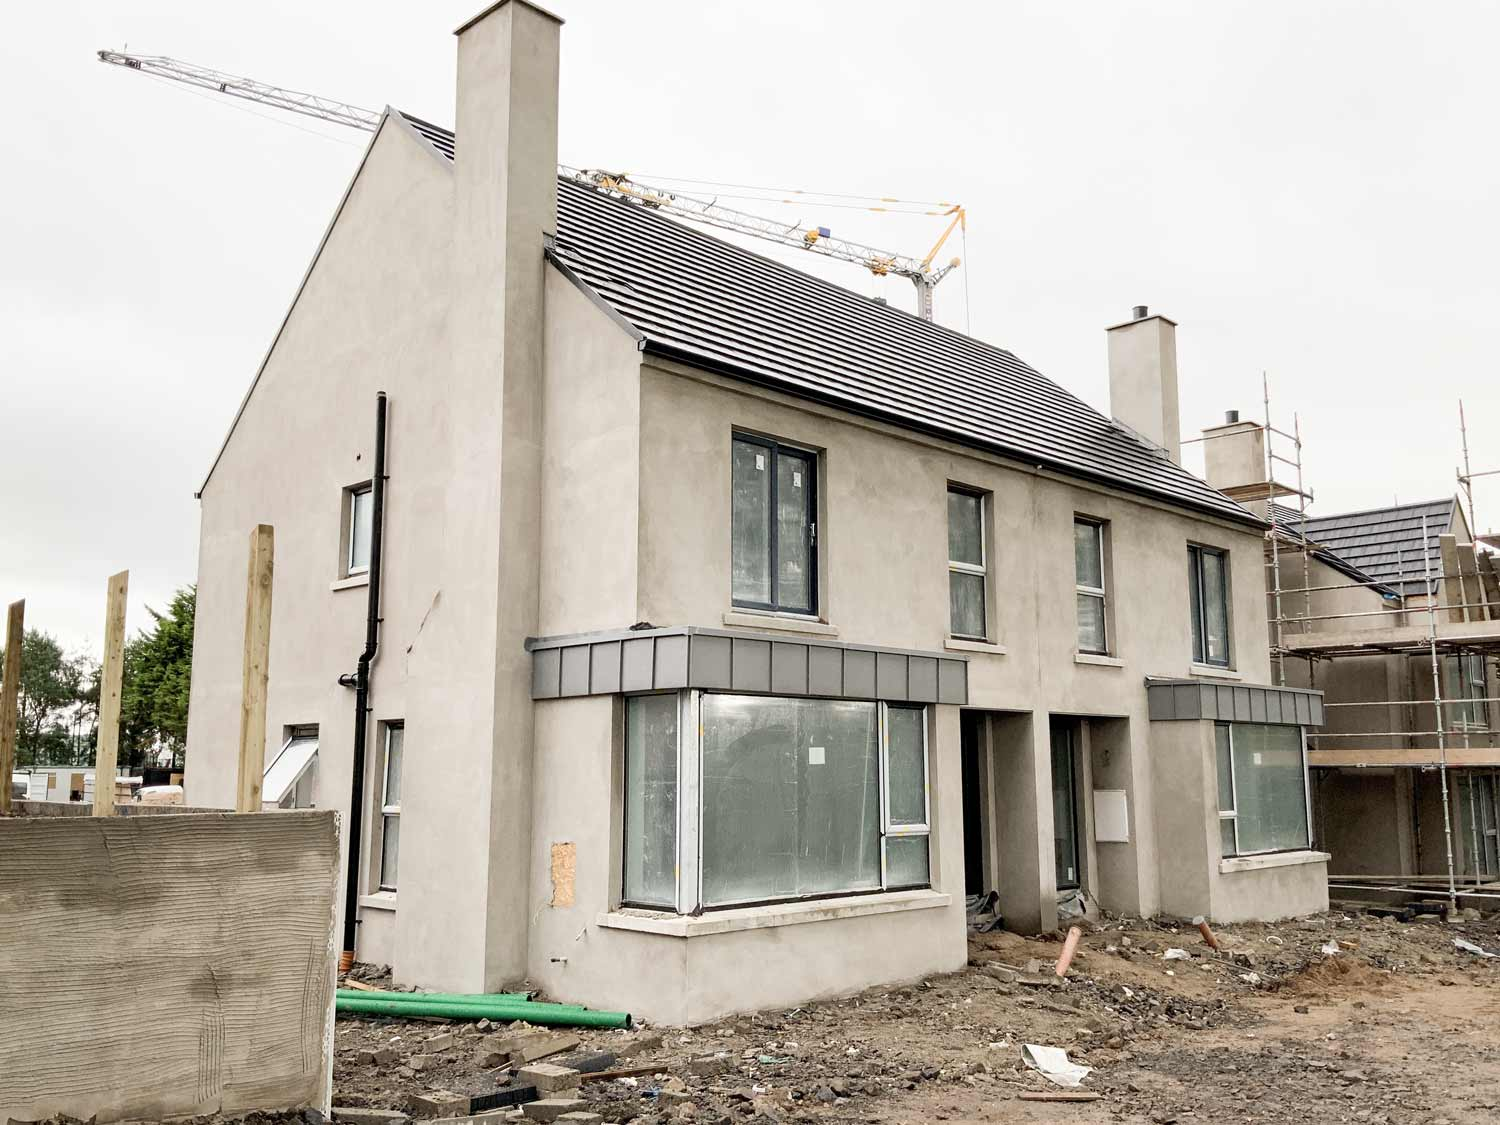 Construction at Portstewart Road